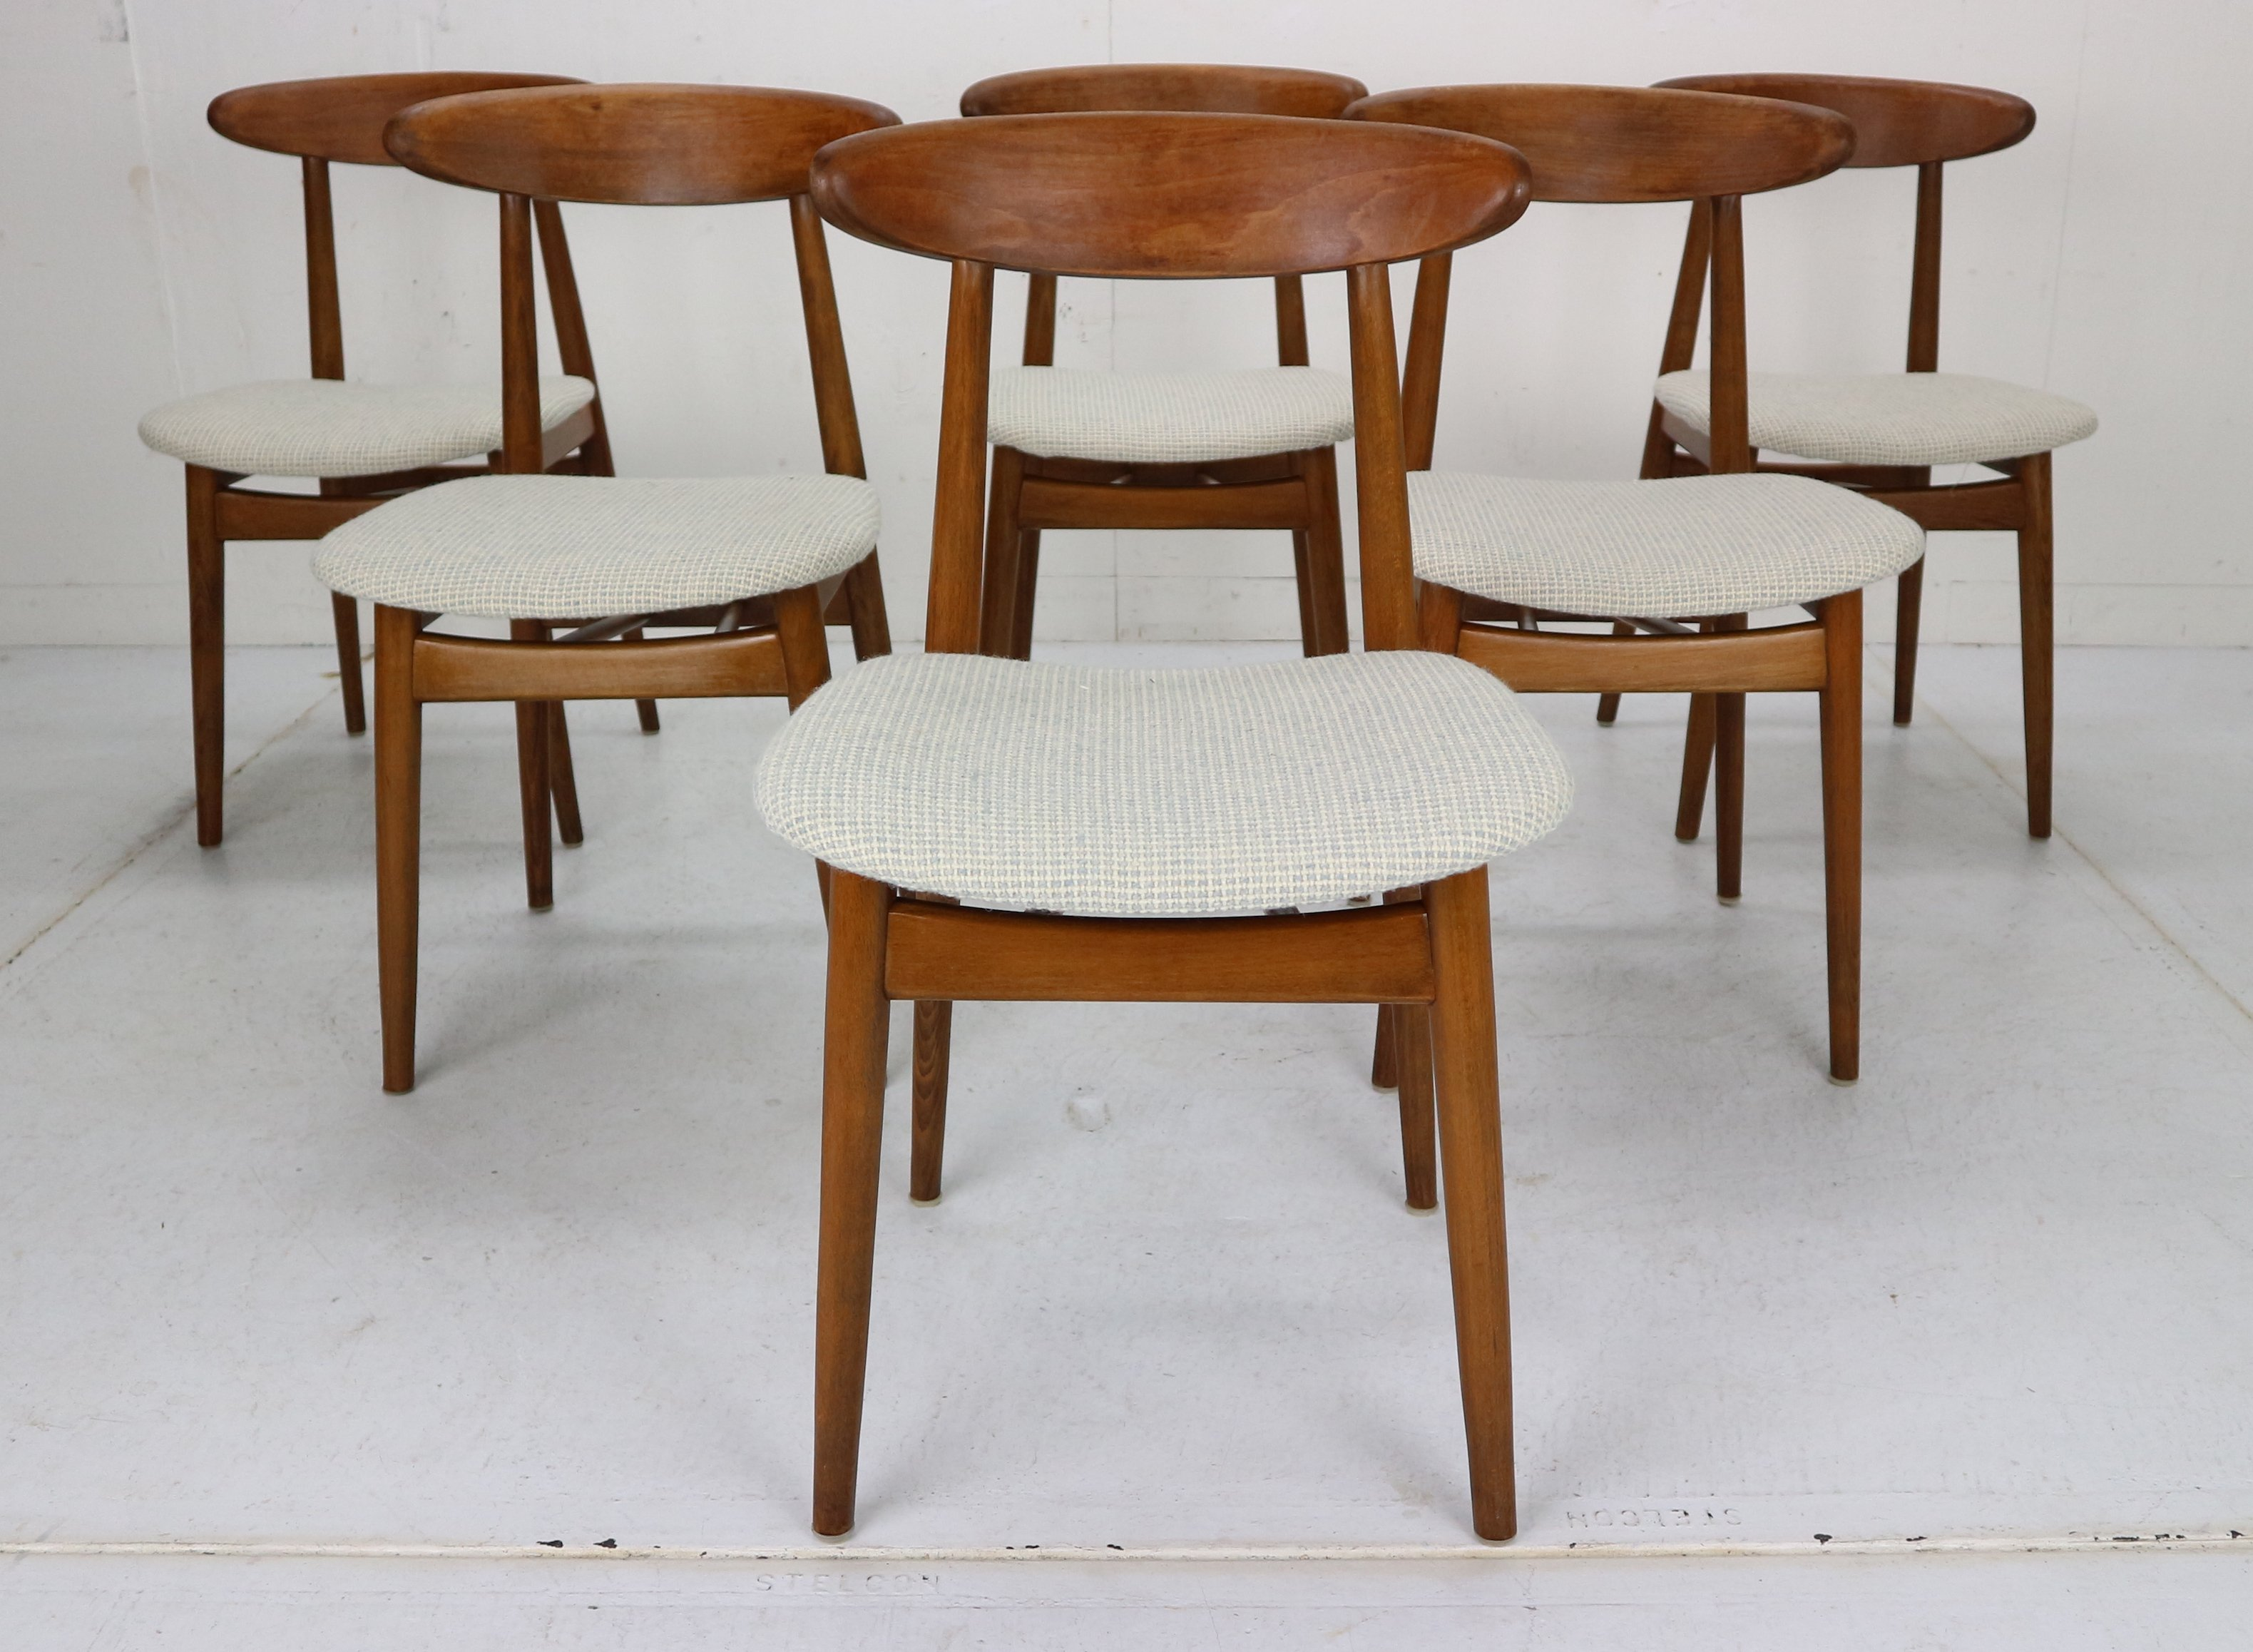 Set Of 6 Scandinavian Modern Danish Teak Dining Room Chairs 1960s 127254